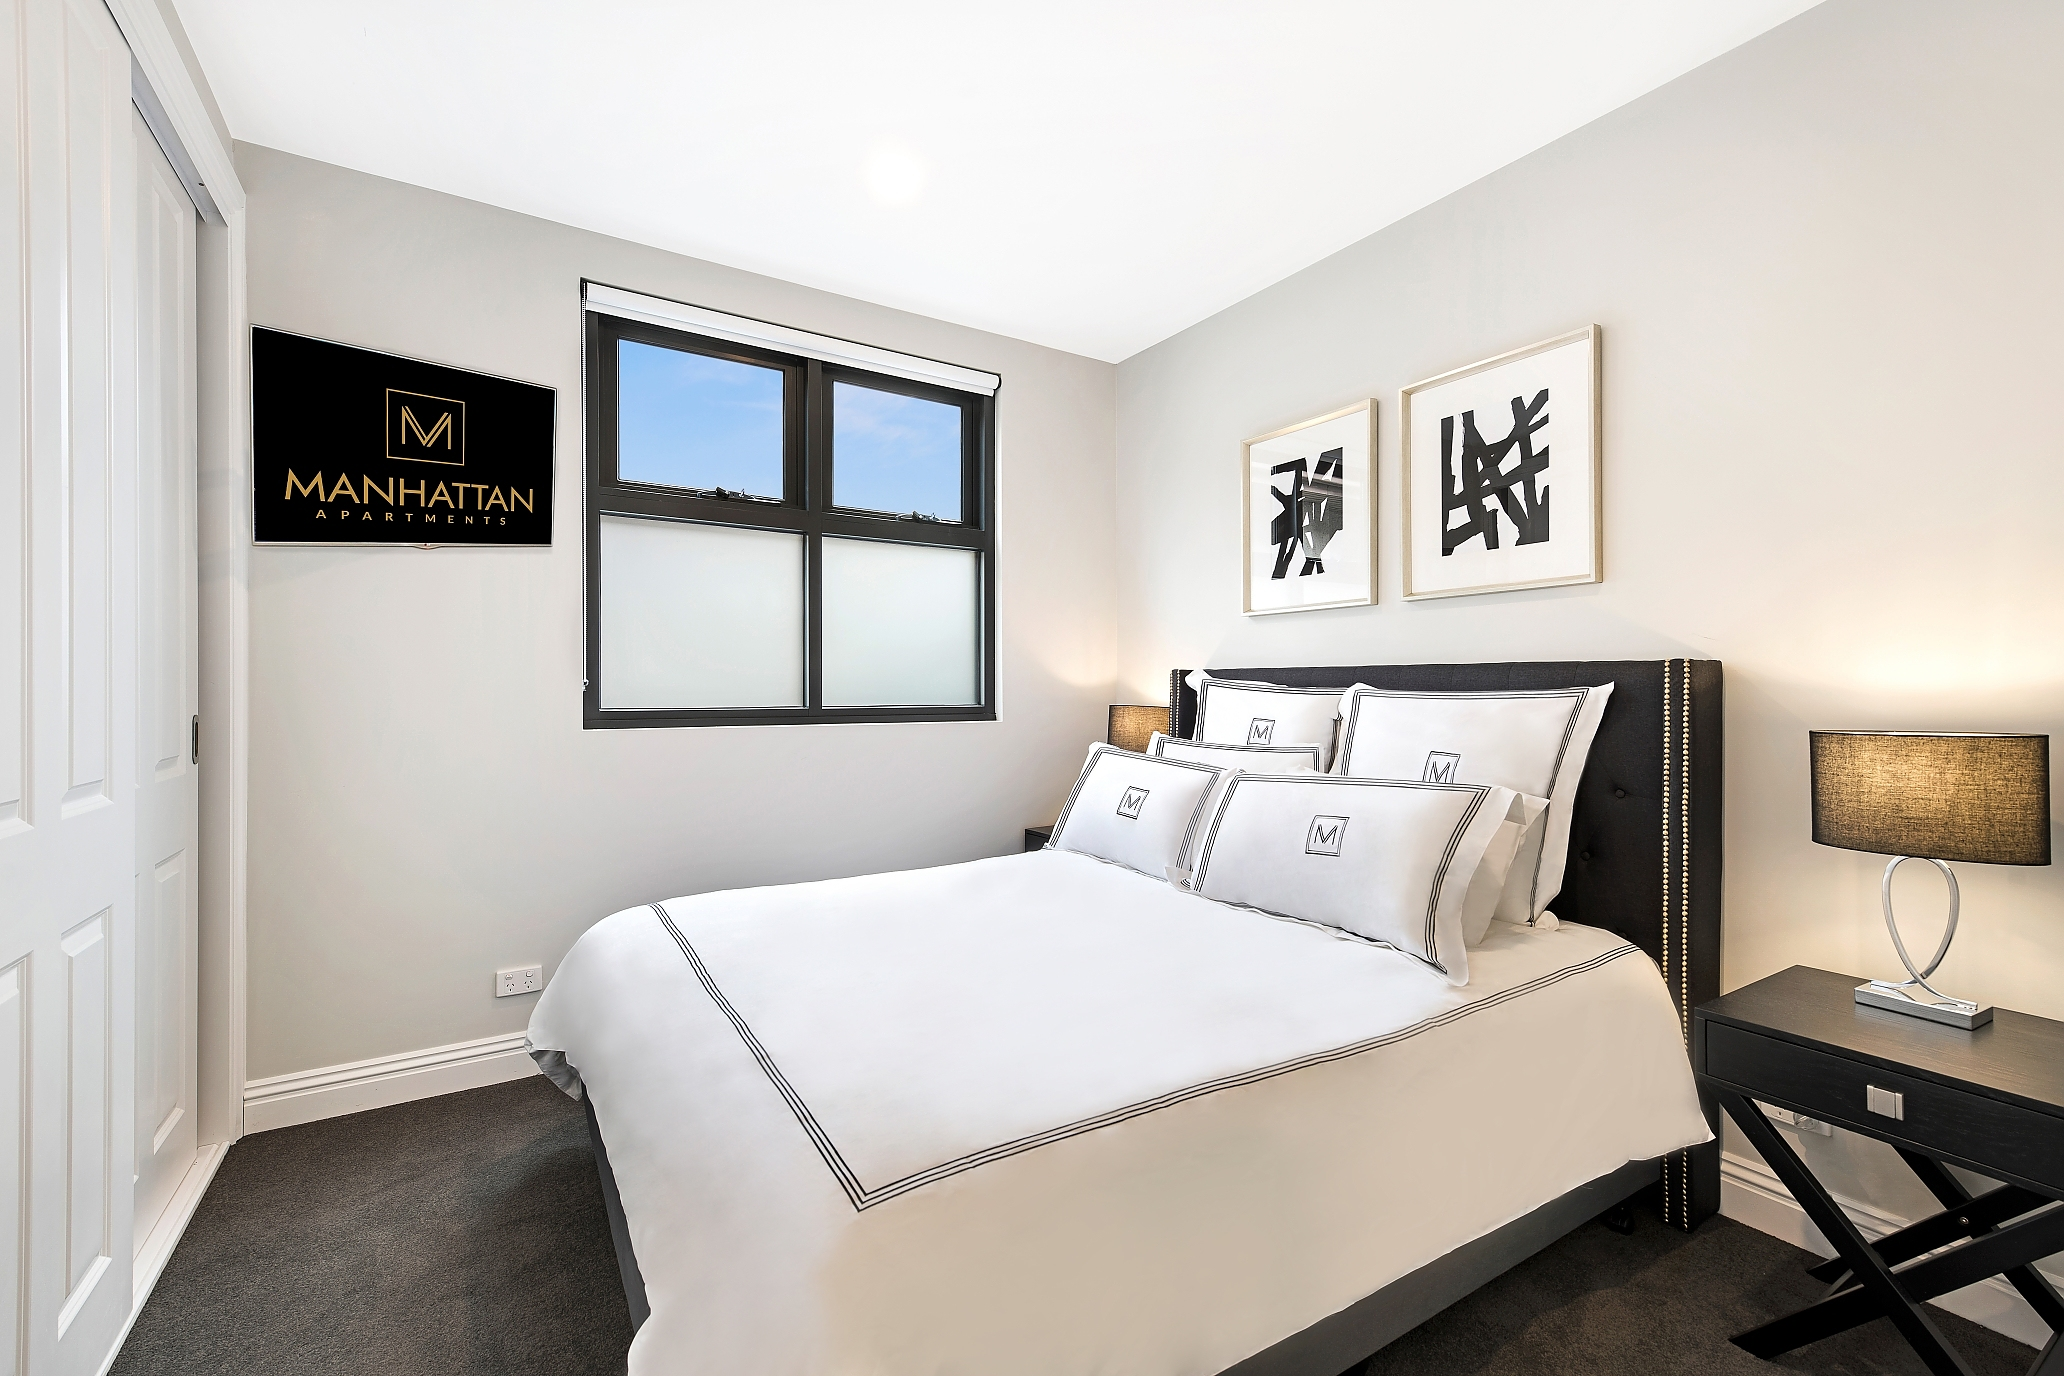 1096-Manhattan-Apartments-466-Dandenong-Road-Caulfield-North-3161-photo54